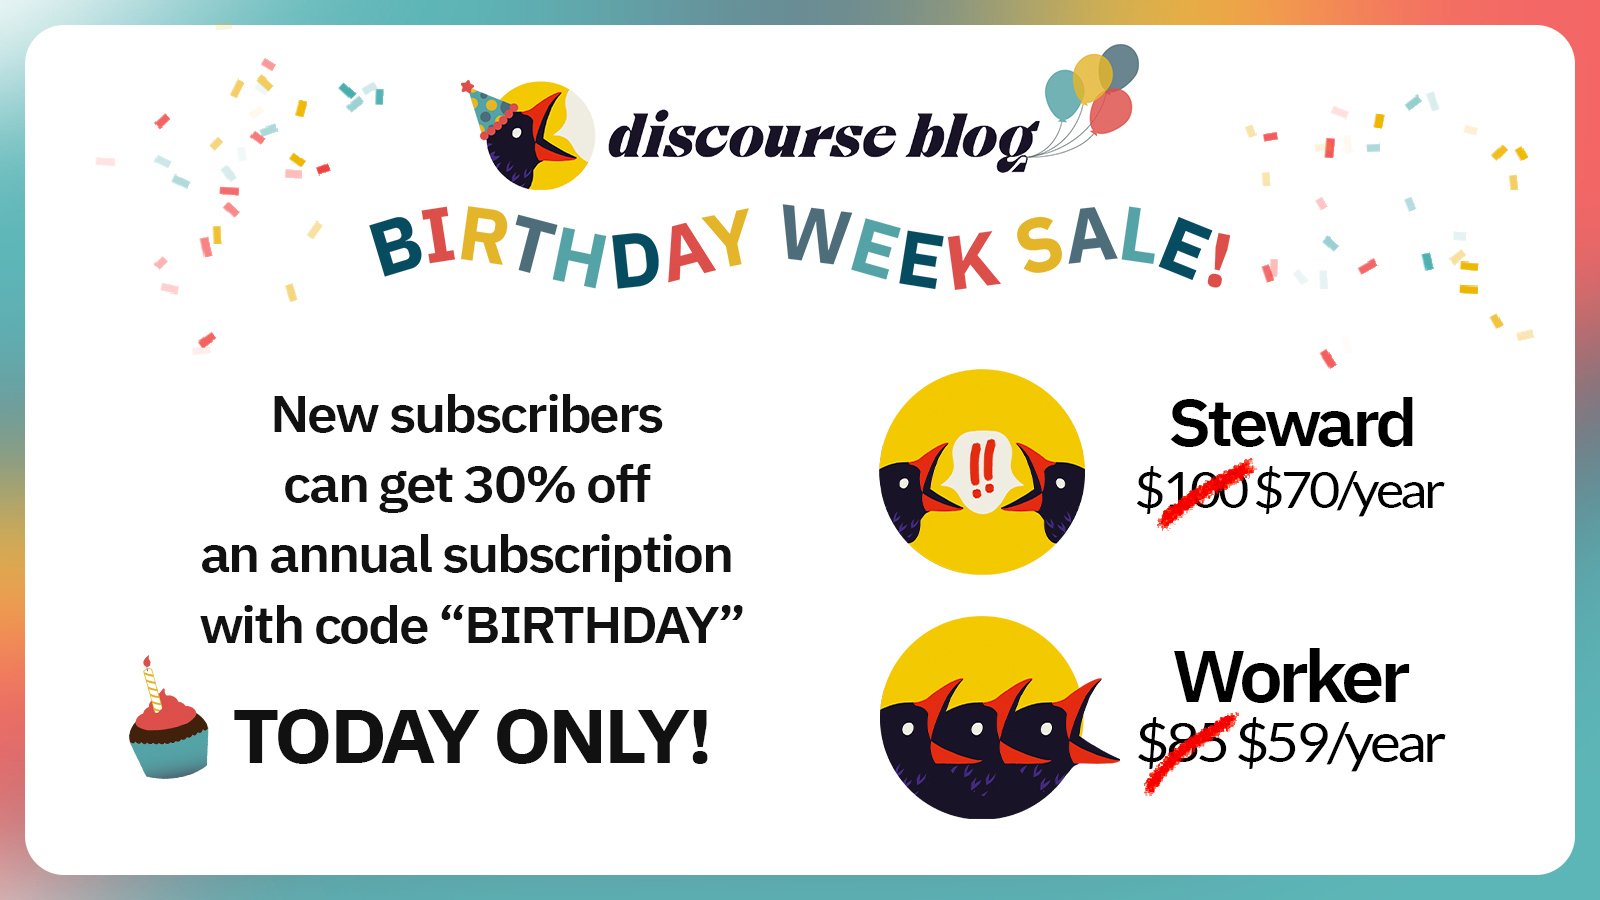 Graphic announcing that Discourse Blog is having a one-day sale